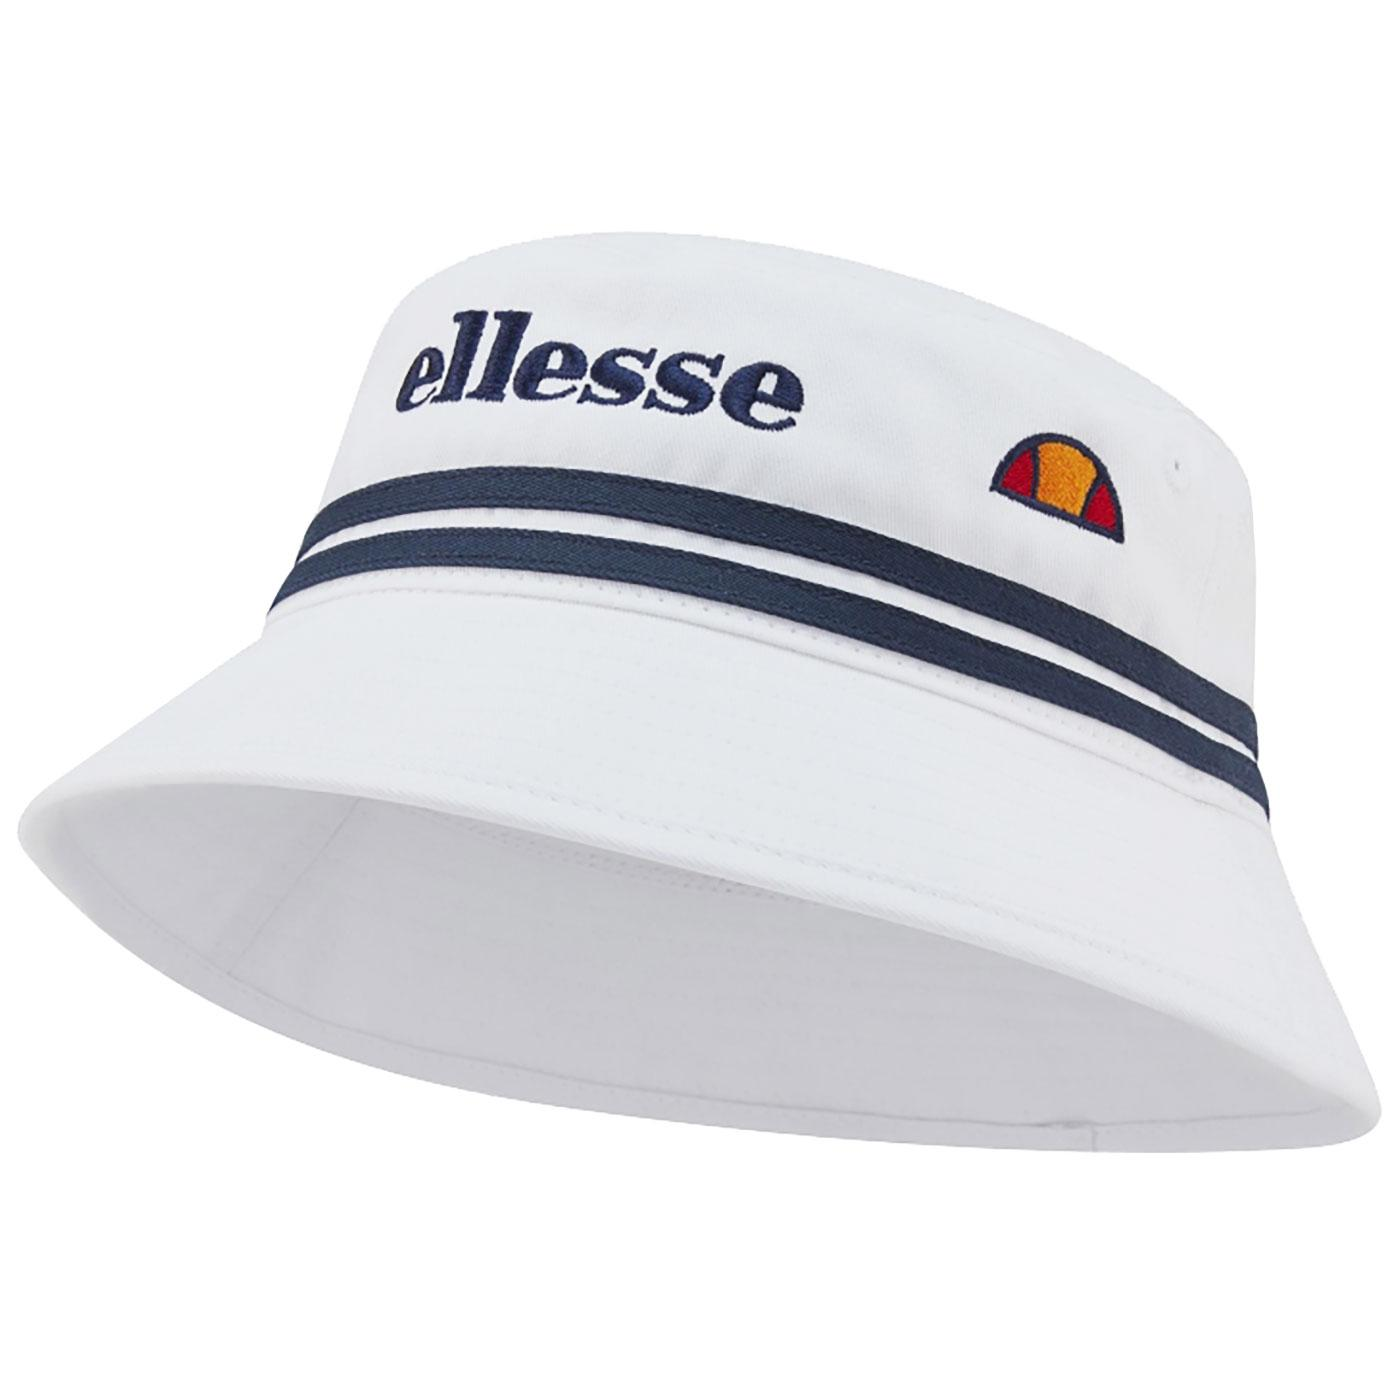 Lorenzo ELLESSE Retro 90s Striped Bucket Hat WHITE